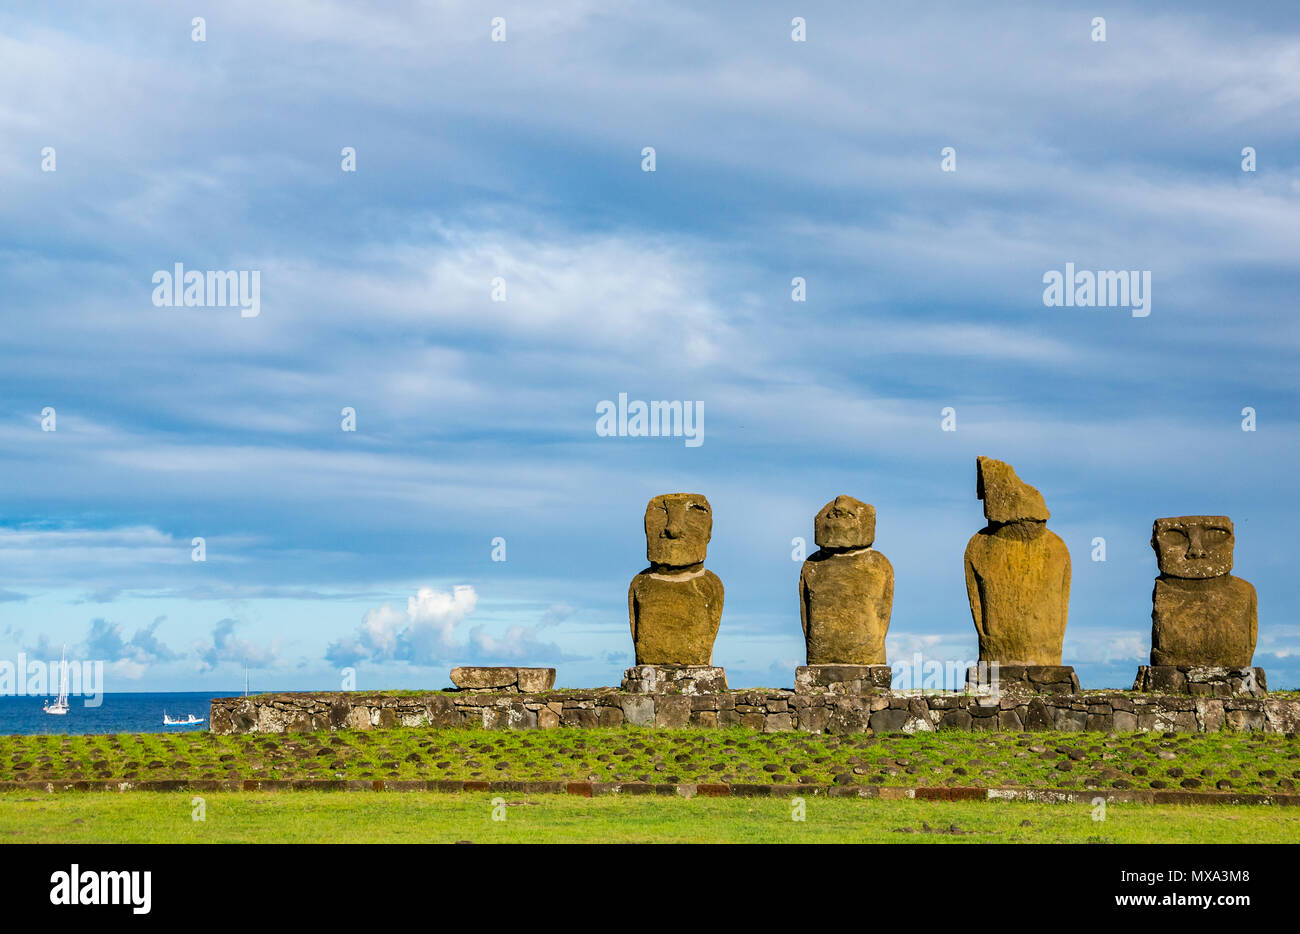 Ahu Vai Ure Moai, Tahai, Hanga Roa, Easter Island, Rapa Nui, Chile, with sailing boats in the Pacific Ocean - Stock Image